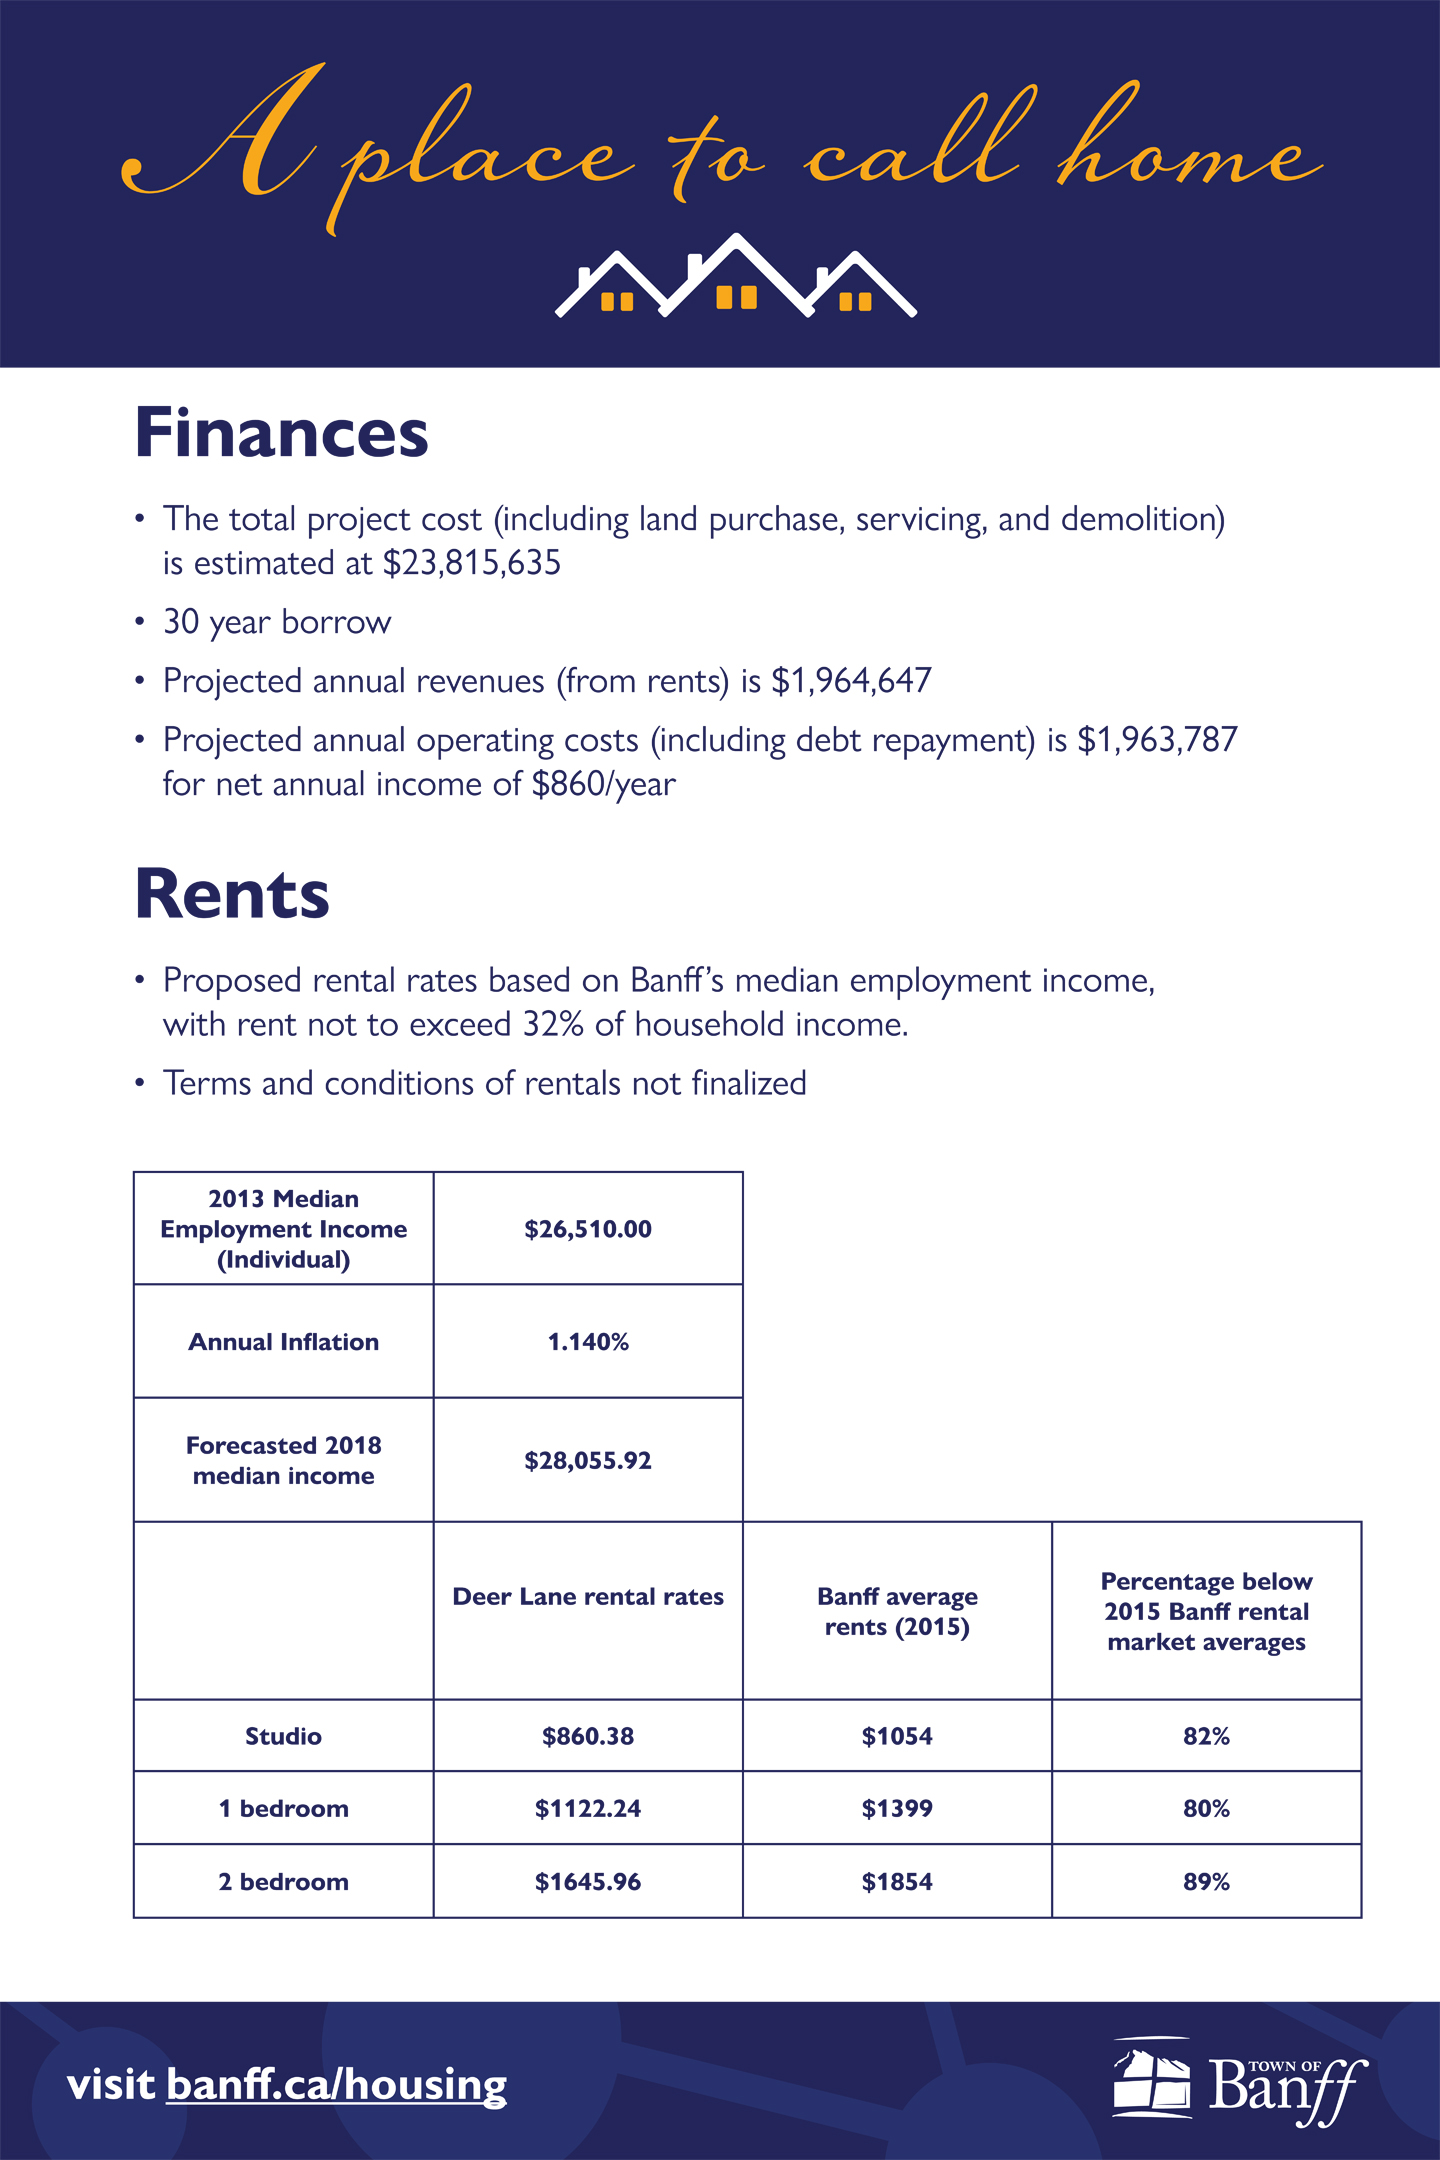 Finances and rents